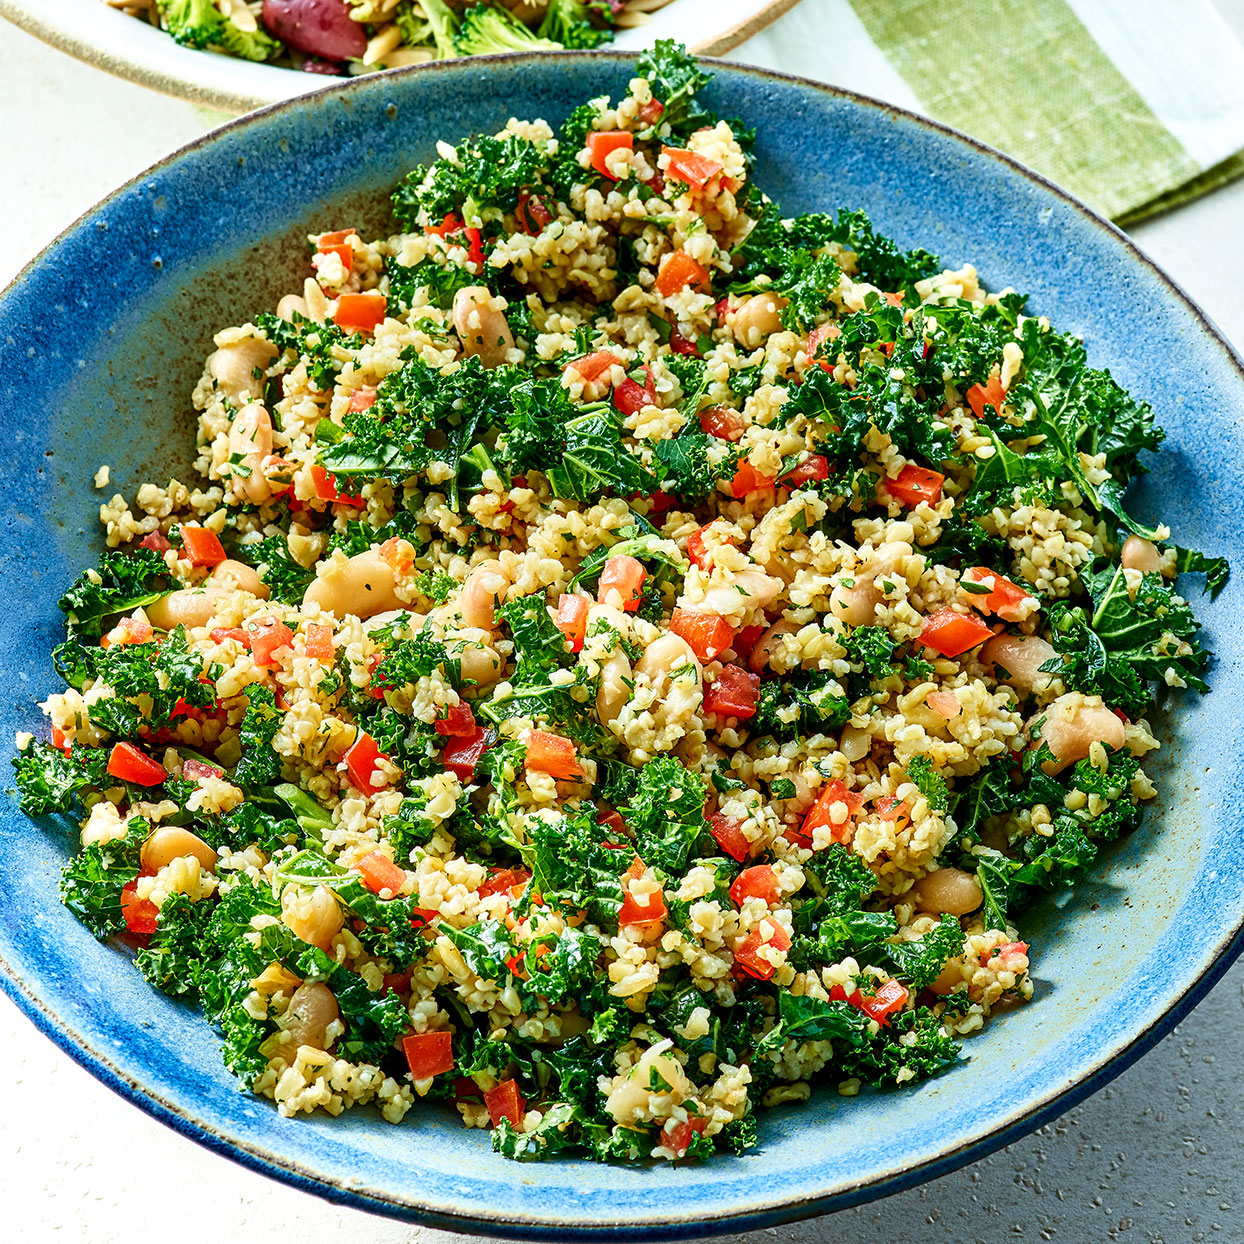 Freekeh Tabbouleh with Kale & Cannellini Beans Trusted Brands